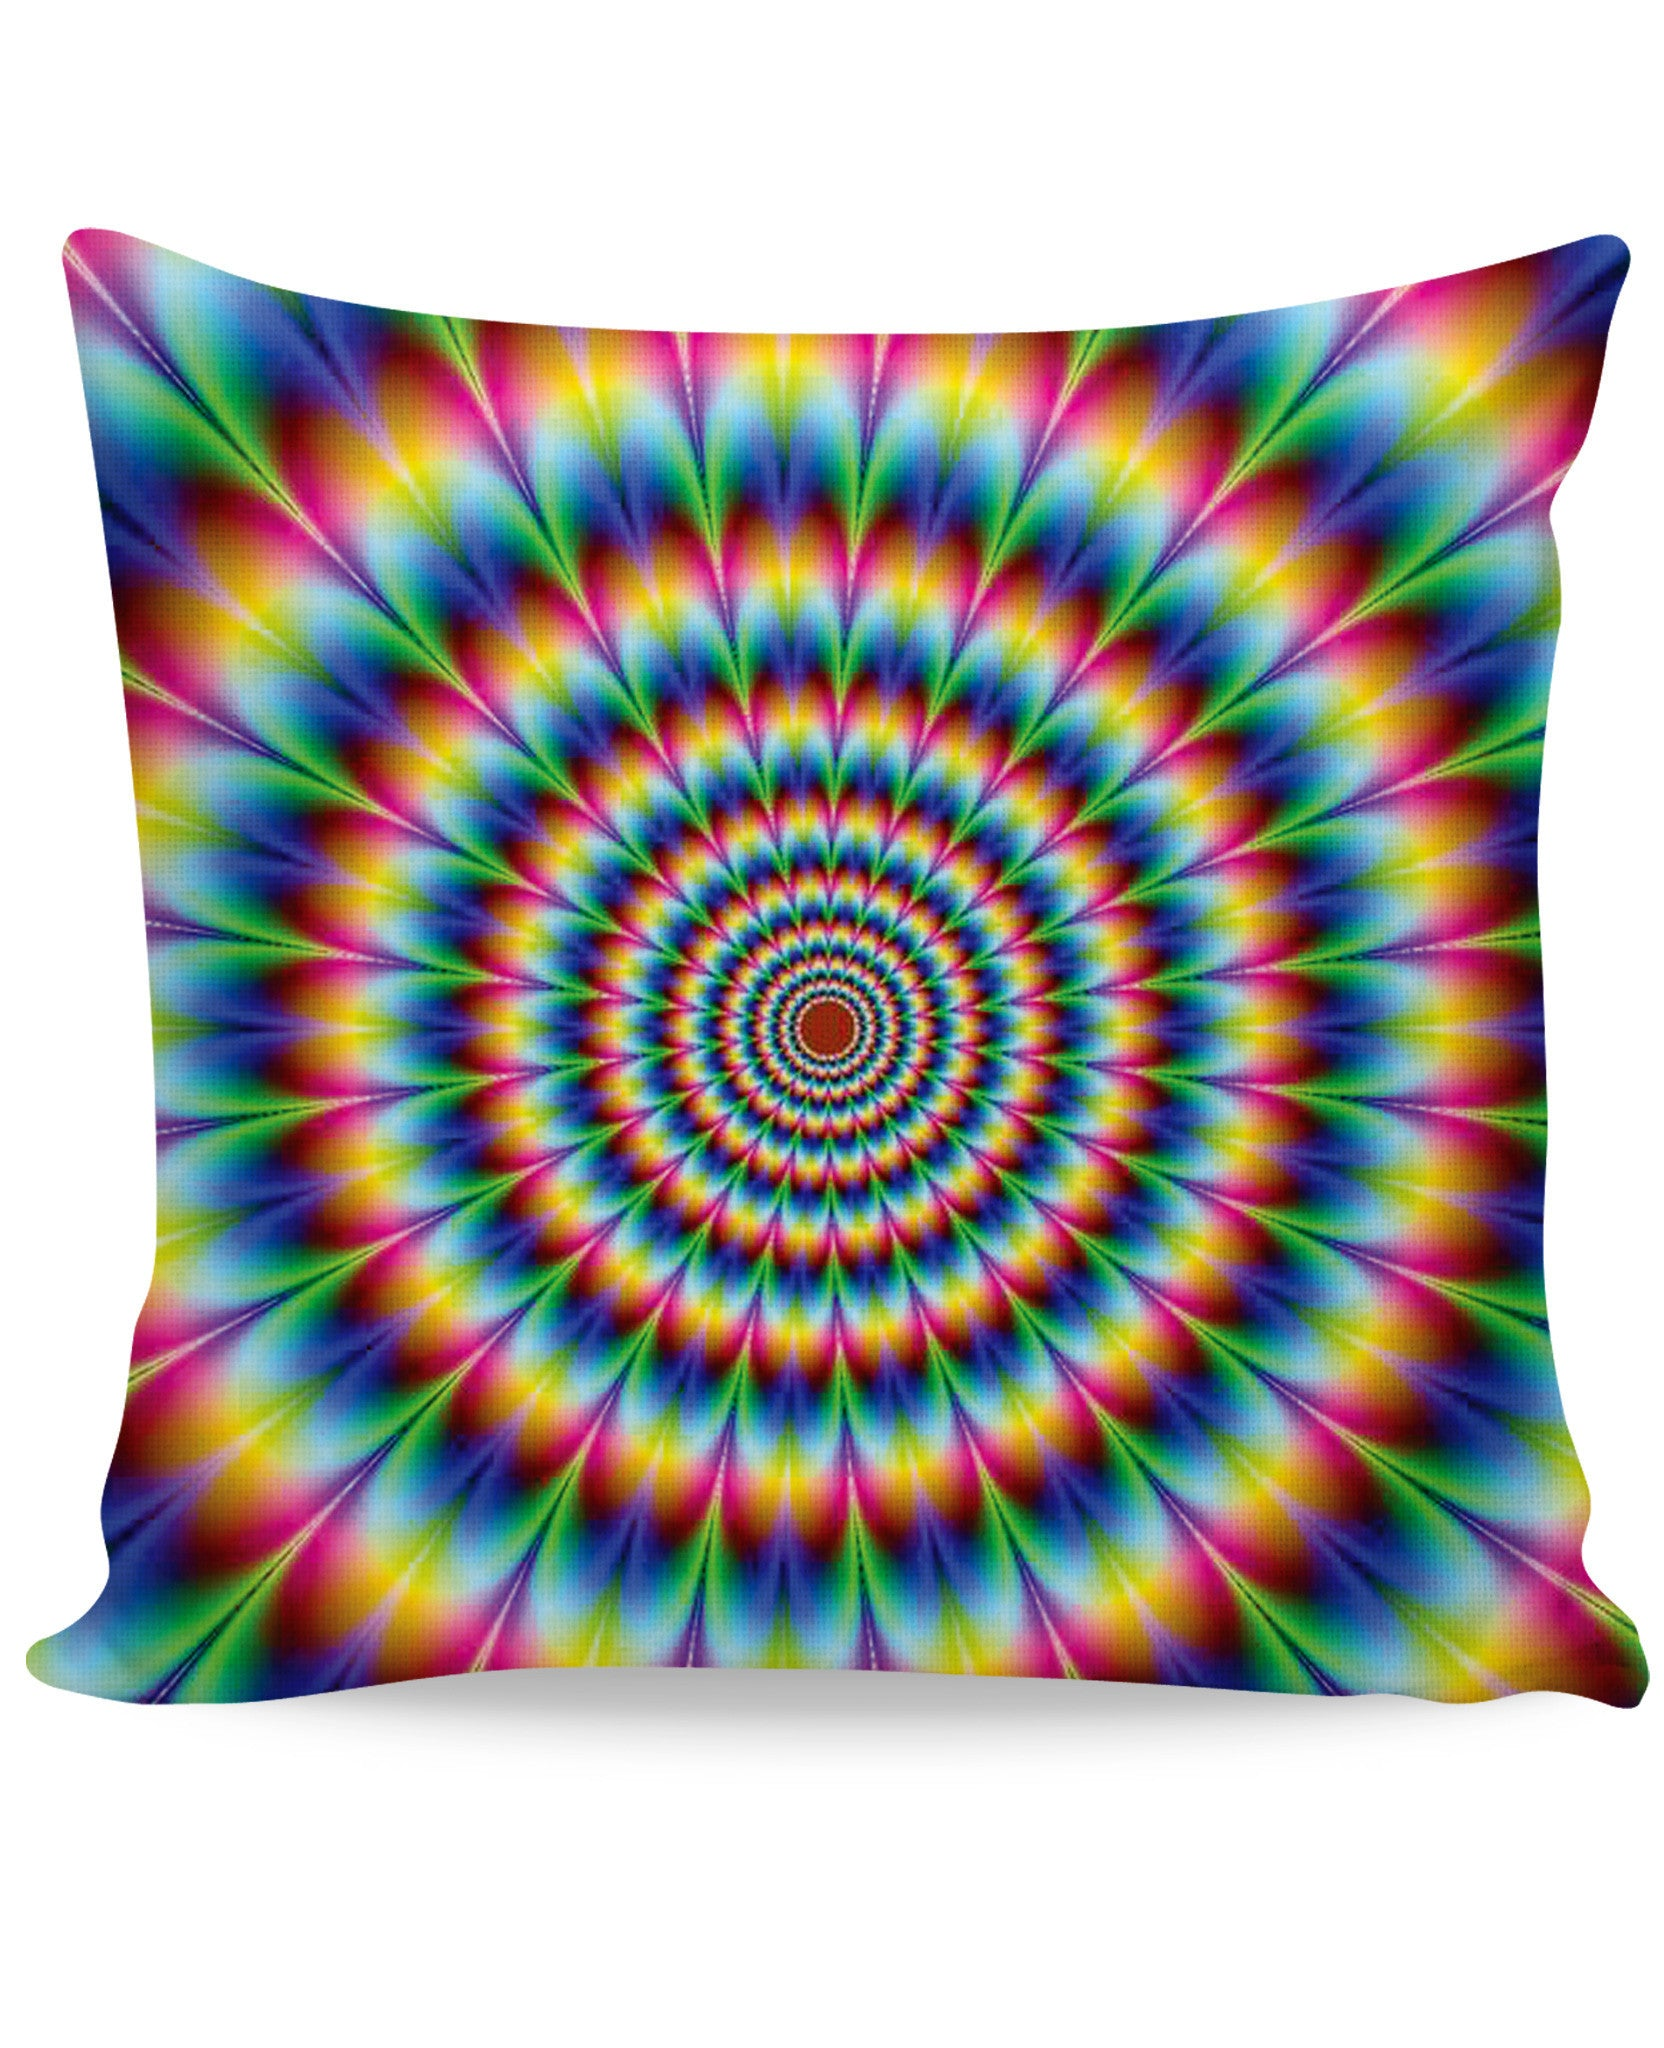 Into the Rainbow Couch Pillow